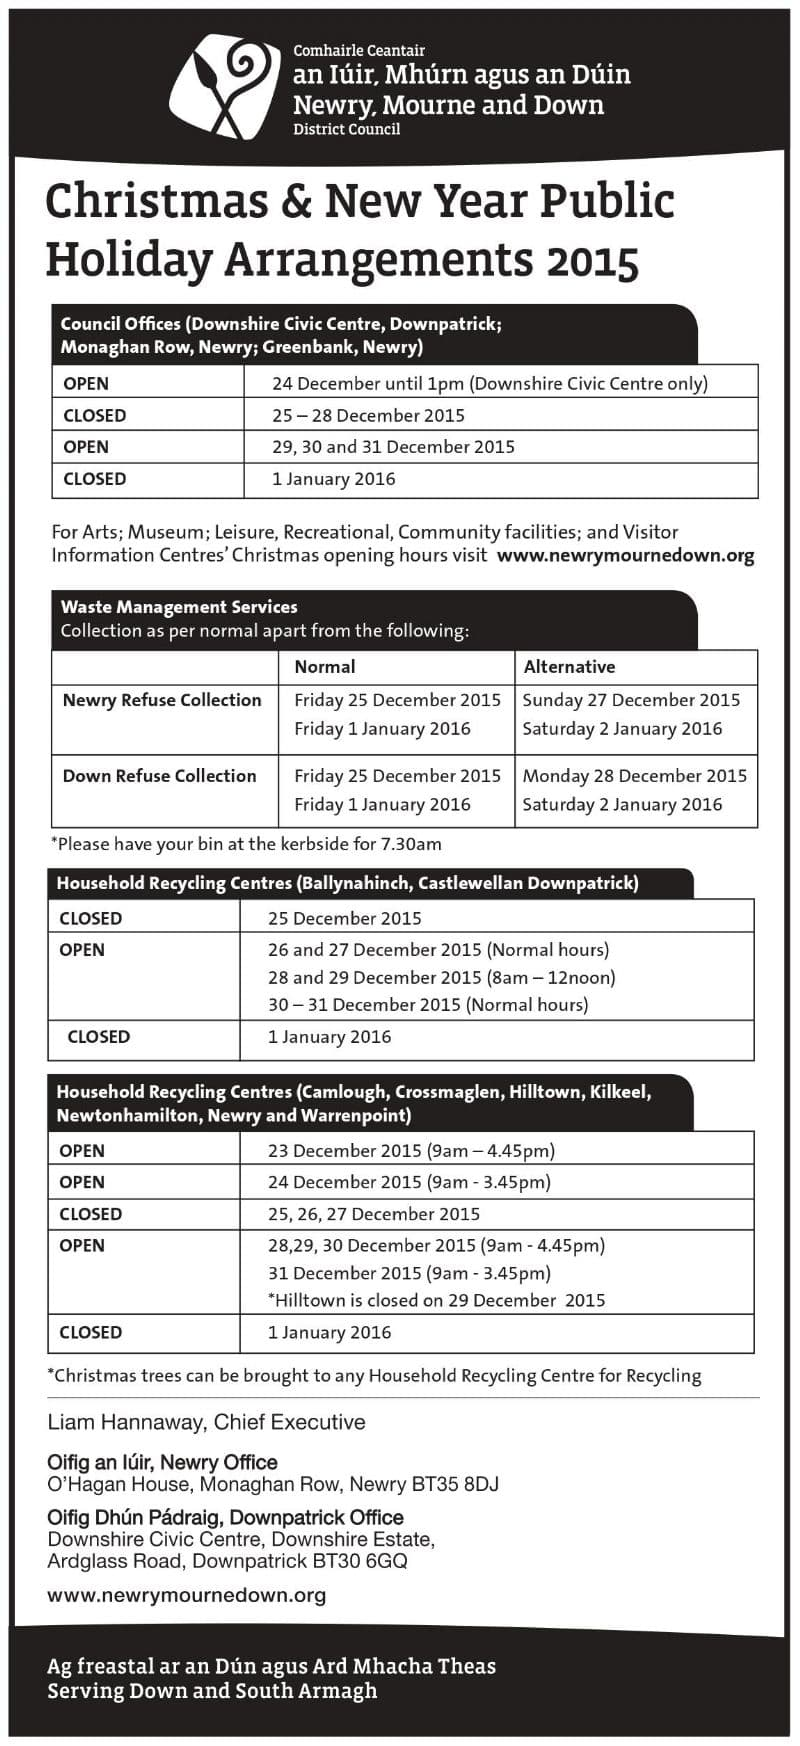 Christmas & New Year Public Holiday Arrangments